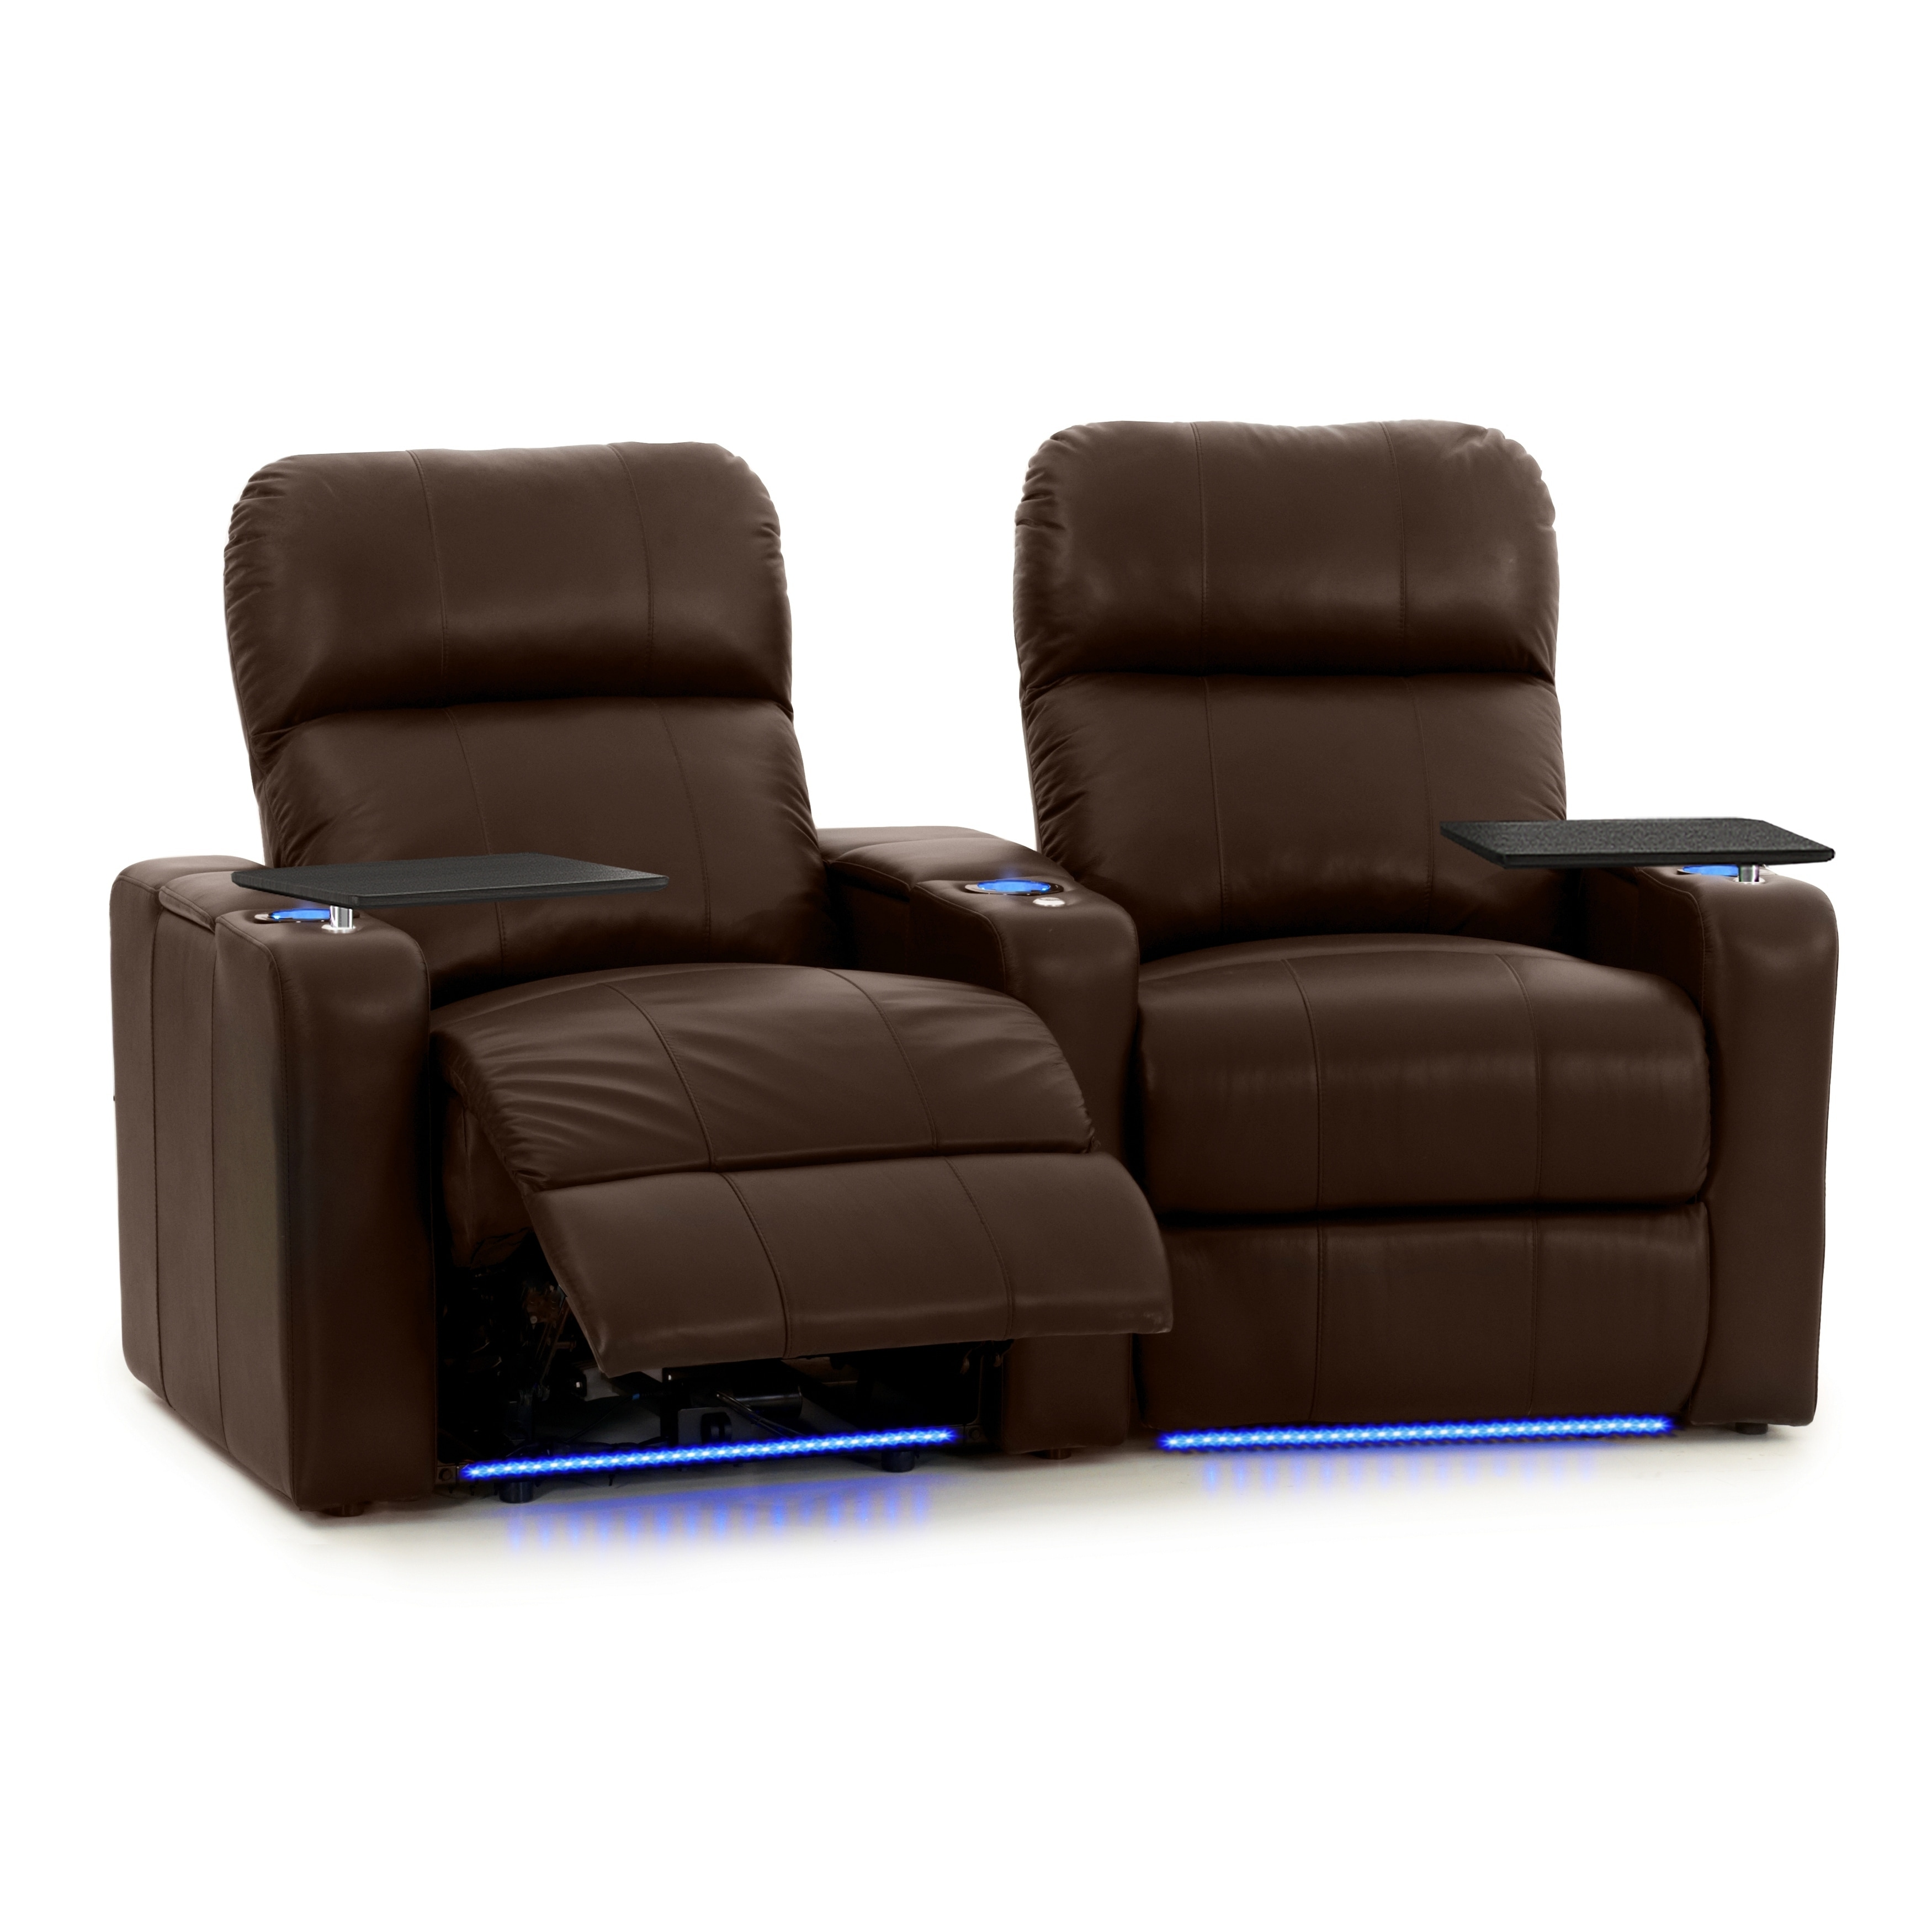 Octane Seating Turbo XL700 Brown Leather Home Theater Pow...